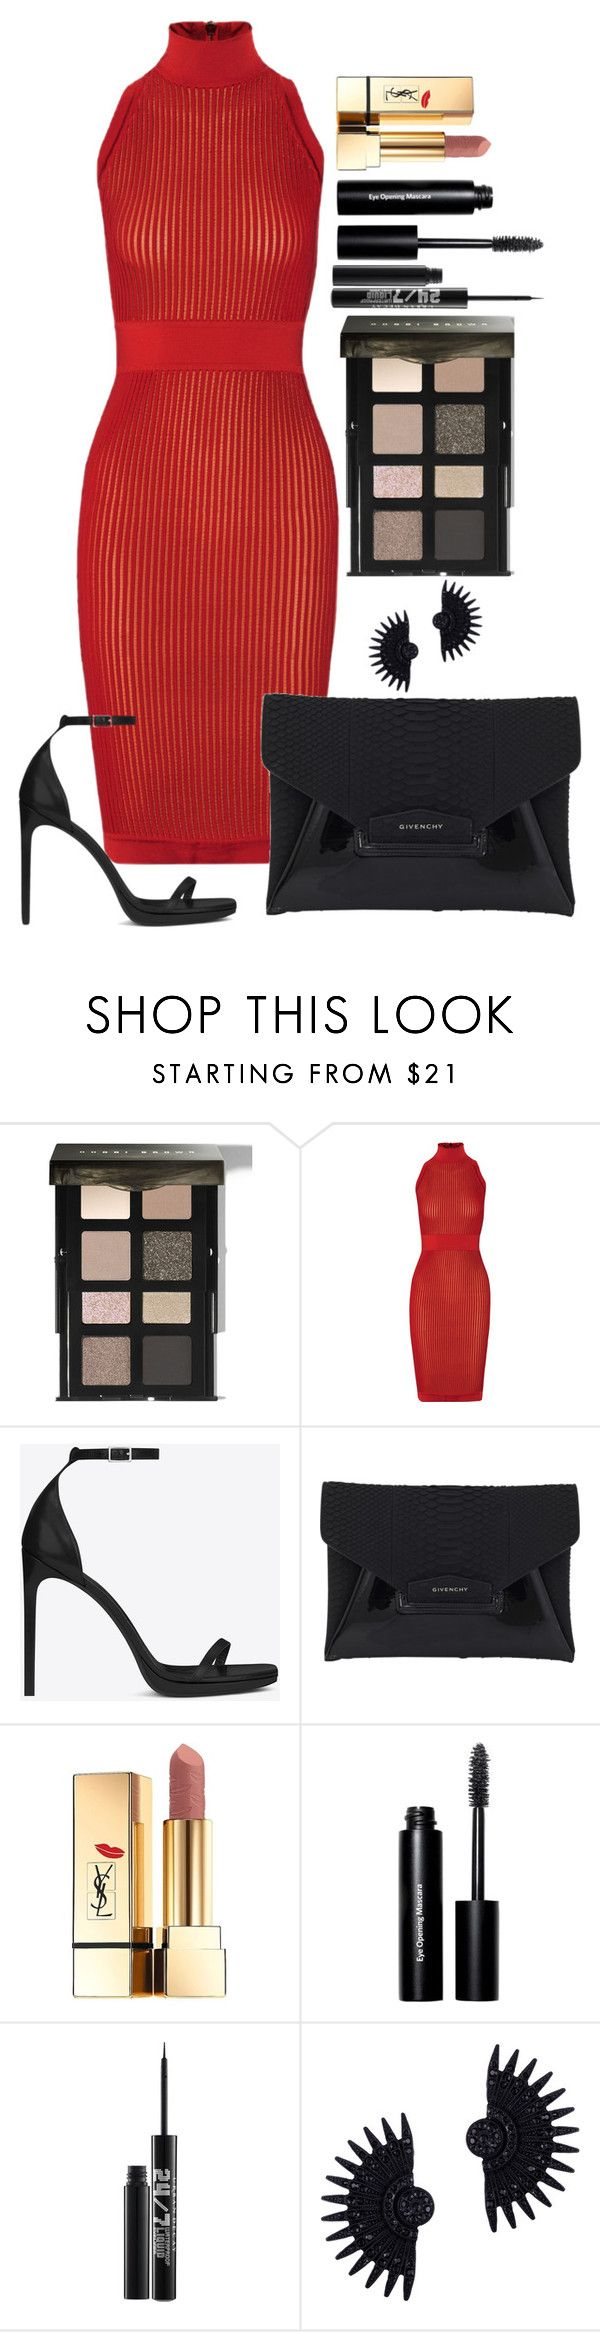 """Untitled #1445"" by fabianarveloc on Polyvore featuring Bobbi Brown Cosmetics, Balmain, Yves Saint Laurent, Givenchy, Urban Decay and Lulu Frost"